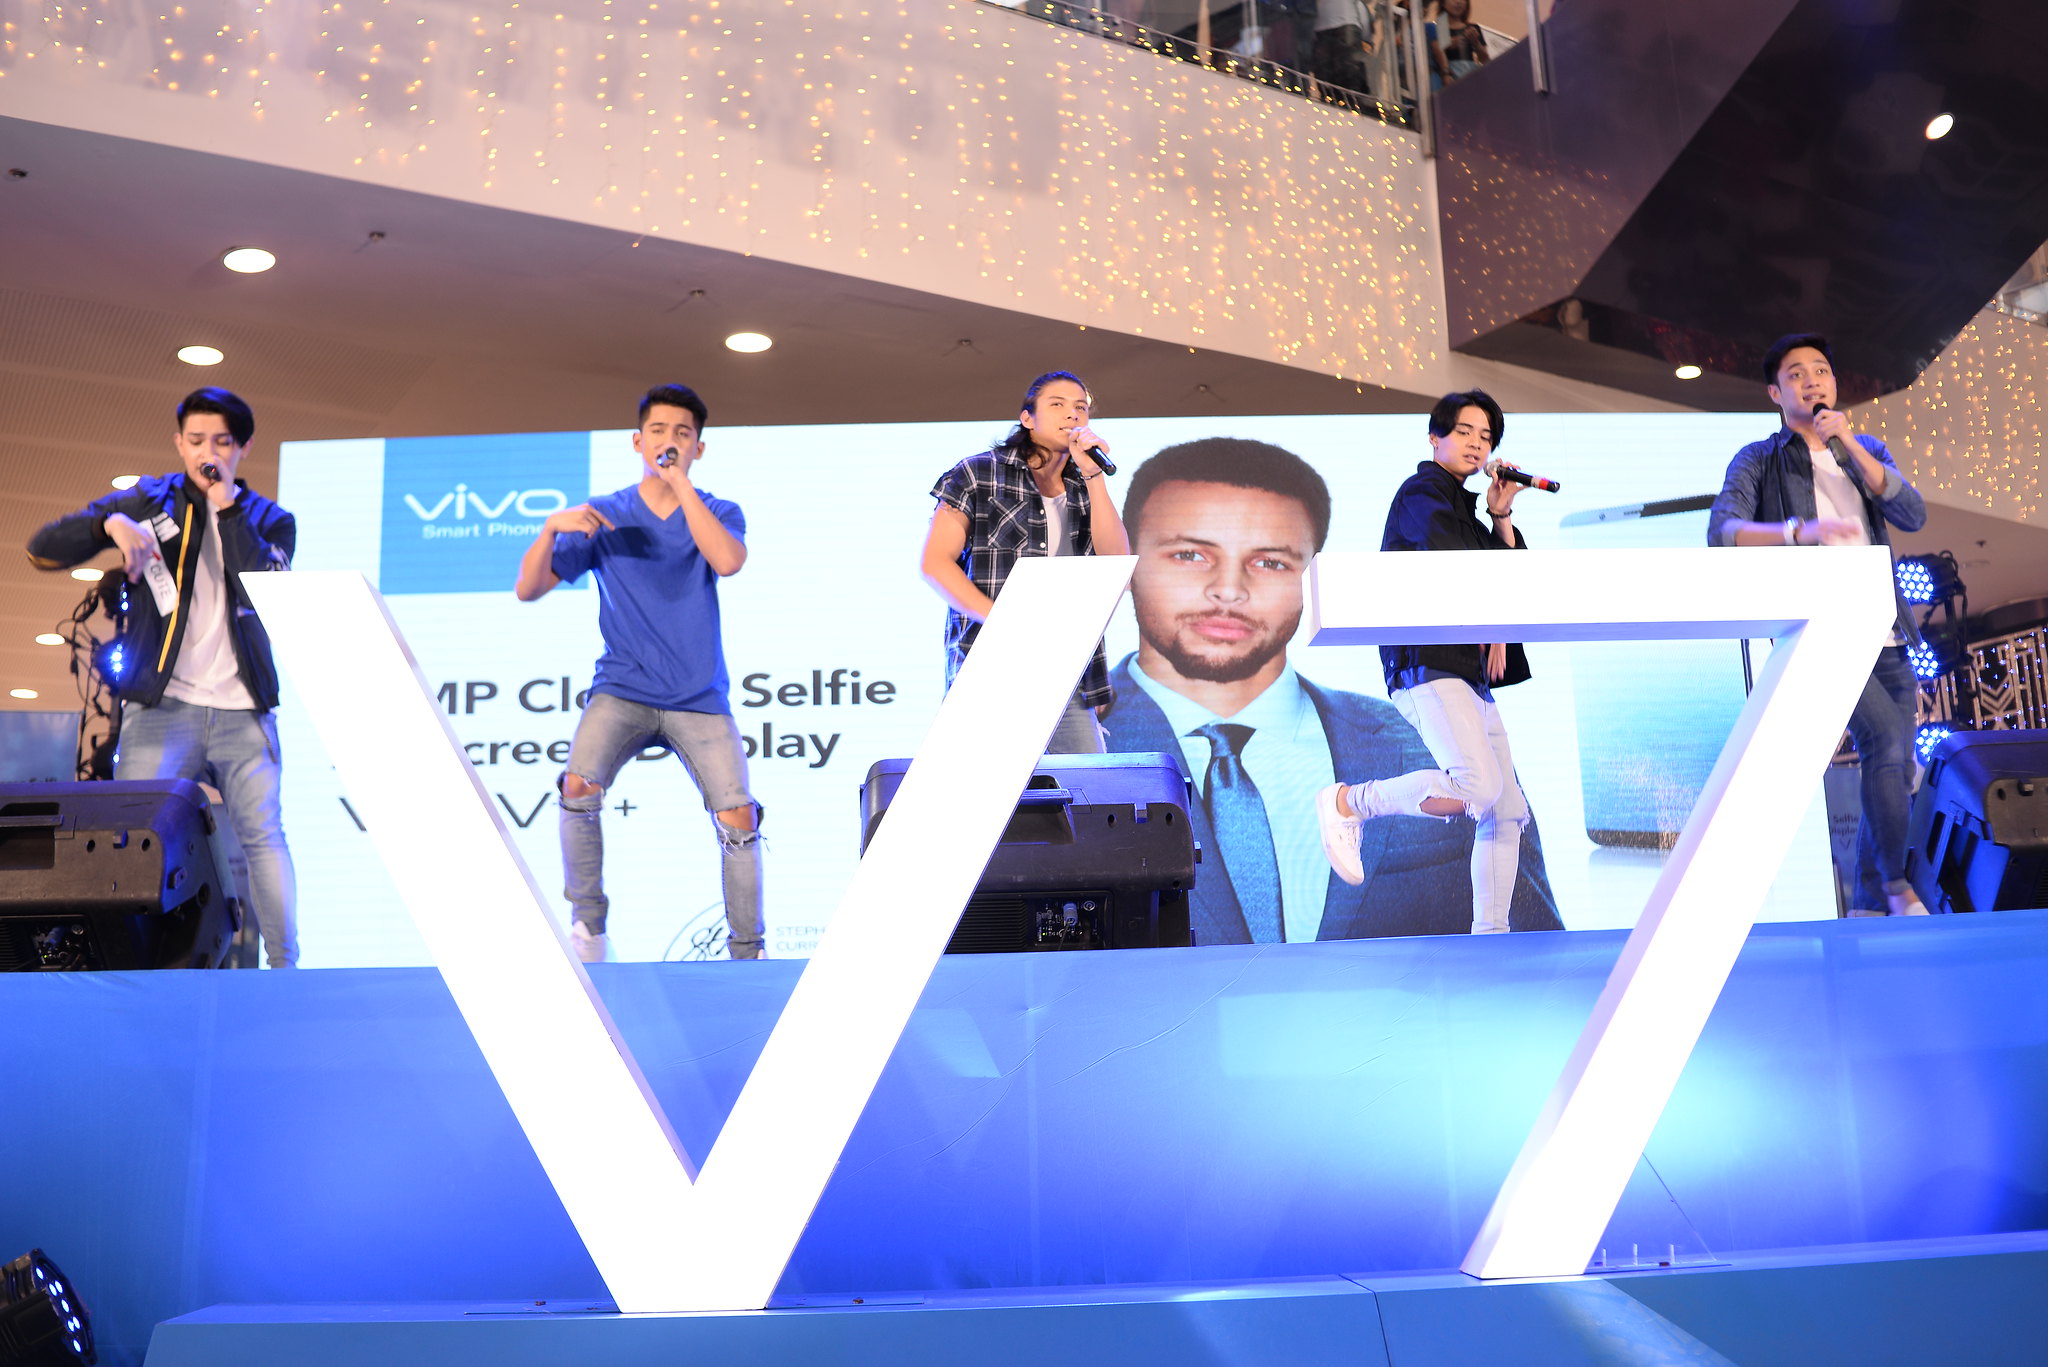 Tech News: Vivo V7 in Bacolod City with Boyband PH